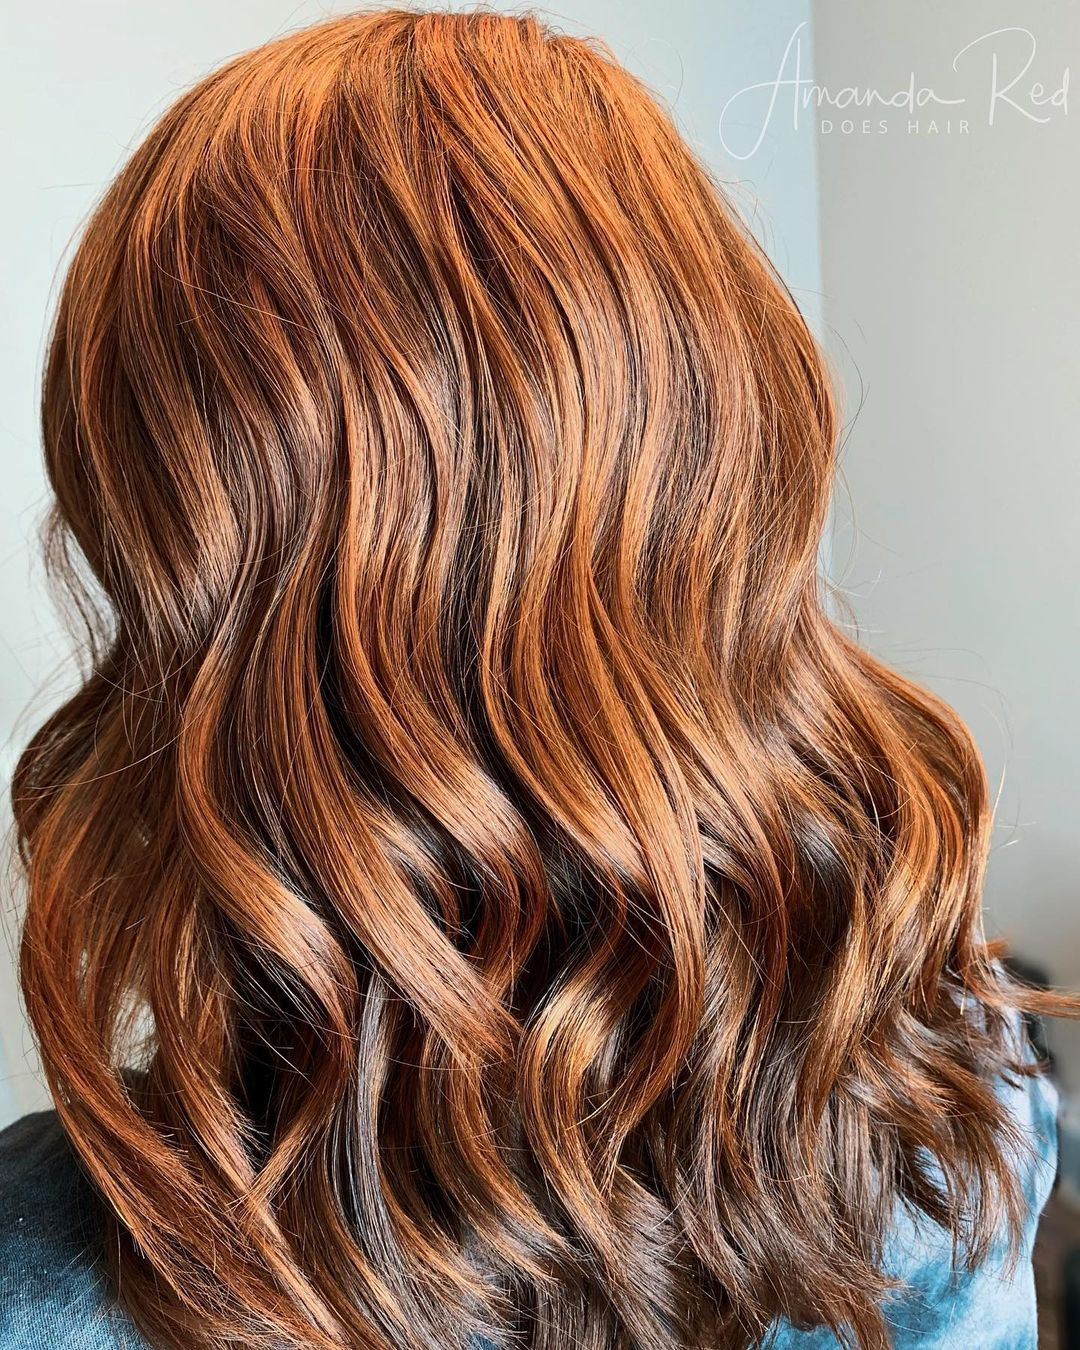 30 Best Auburn Hair Color Ideas That Are Hot This Year!